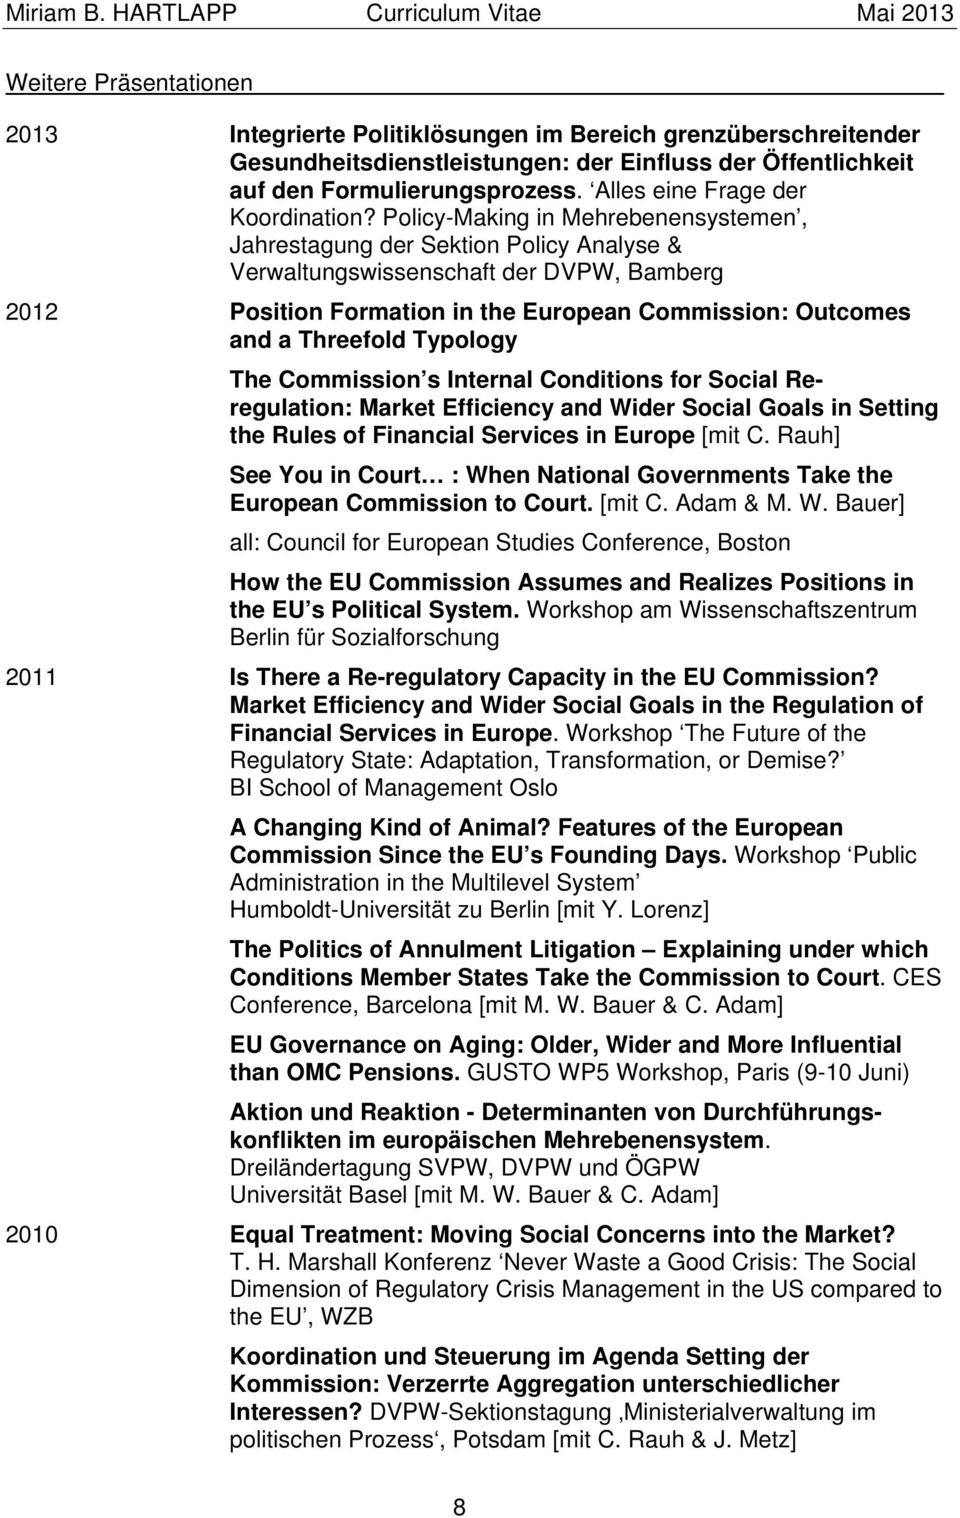 Policy-Making in Mehrebenensystemen, Jahrestagung der Sektion Policy Analyse & Verwaltungswissenschaft der DVPW, Bamberg 2012 Position Formation in the European Commission: Outcomes and a Threefold